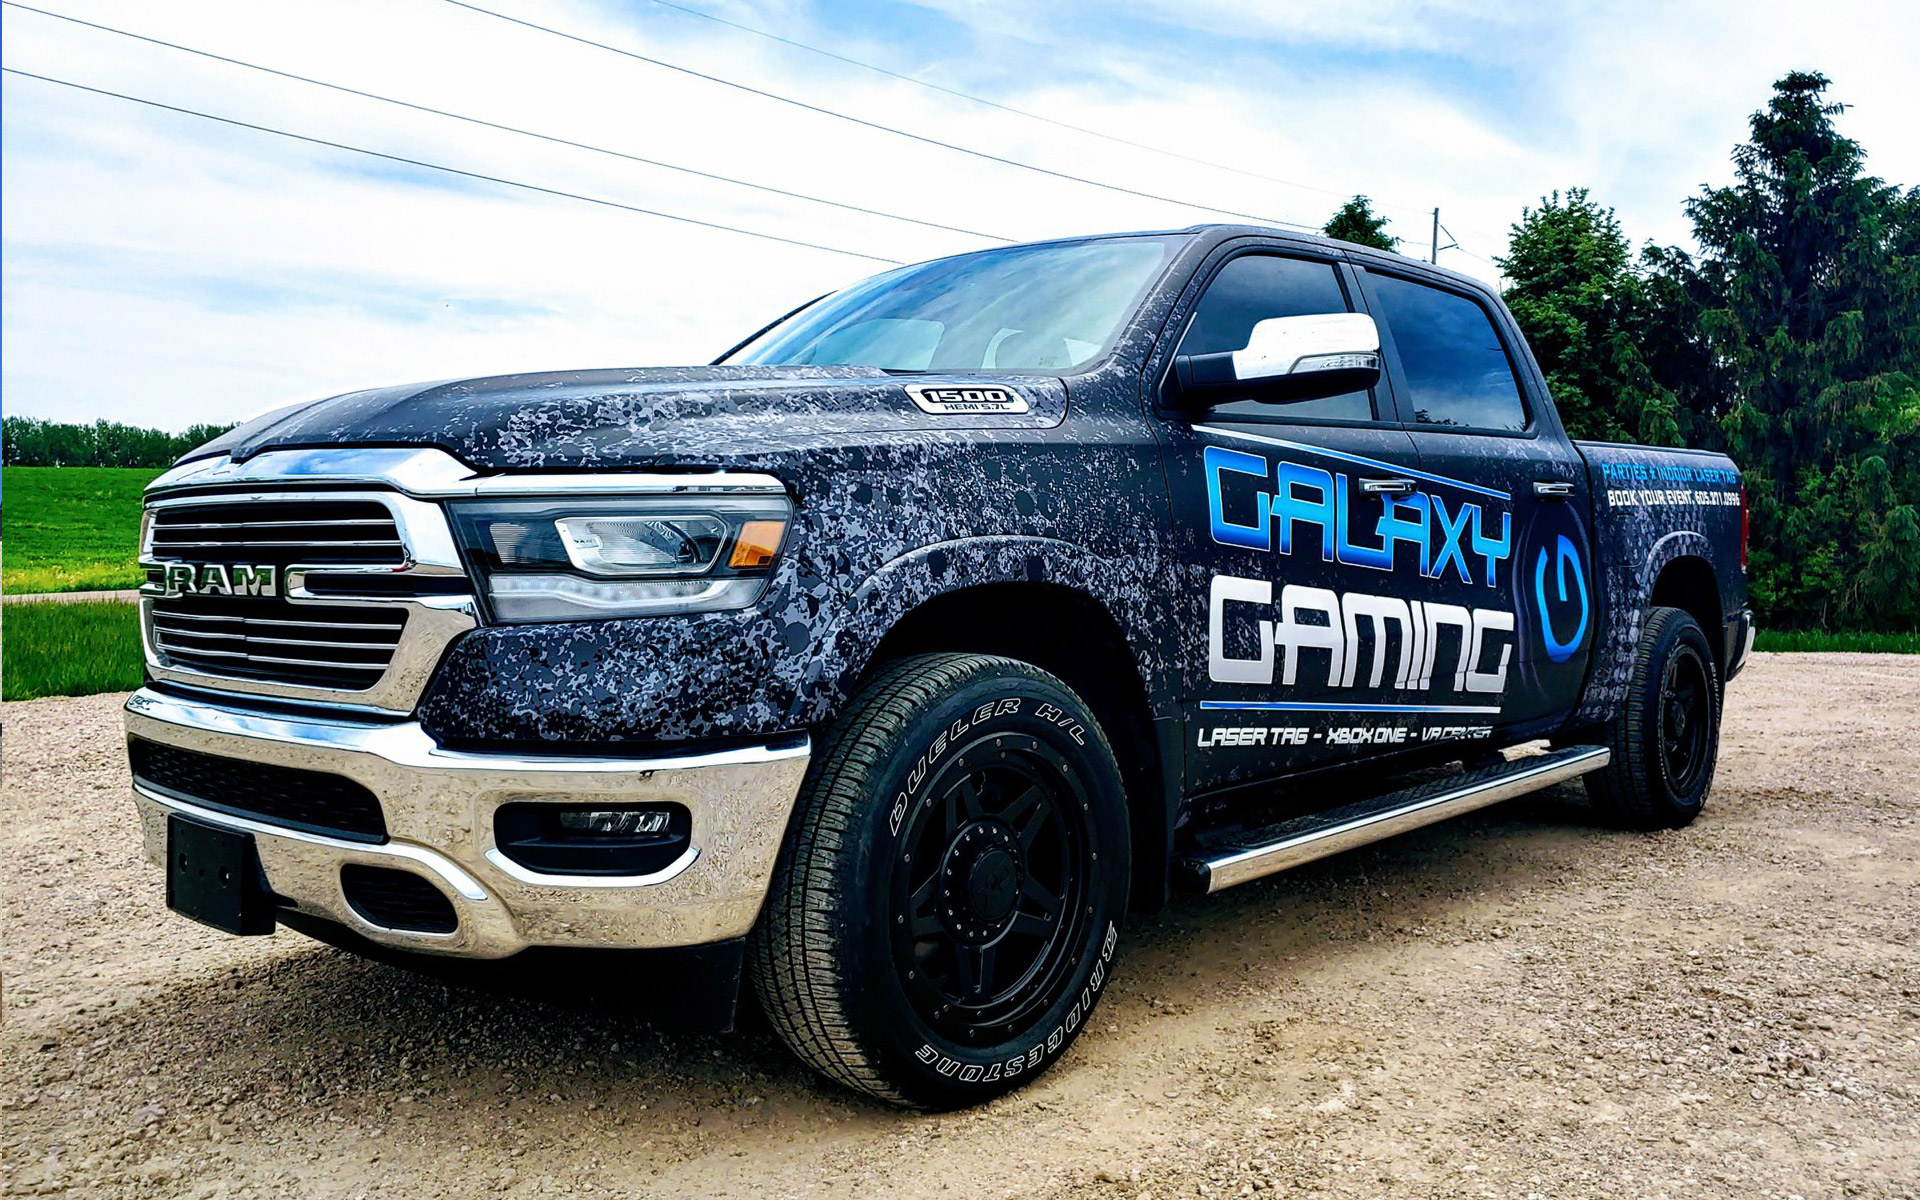 Vehicle Wrap - Galaxy Gaming in Sioux Falls